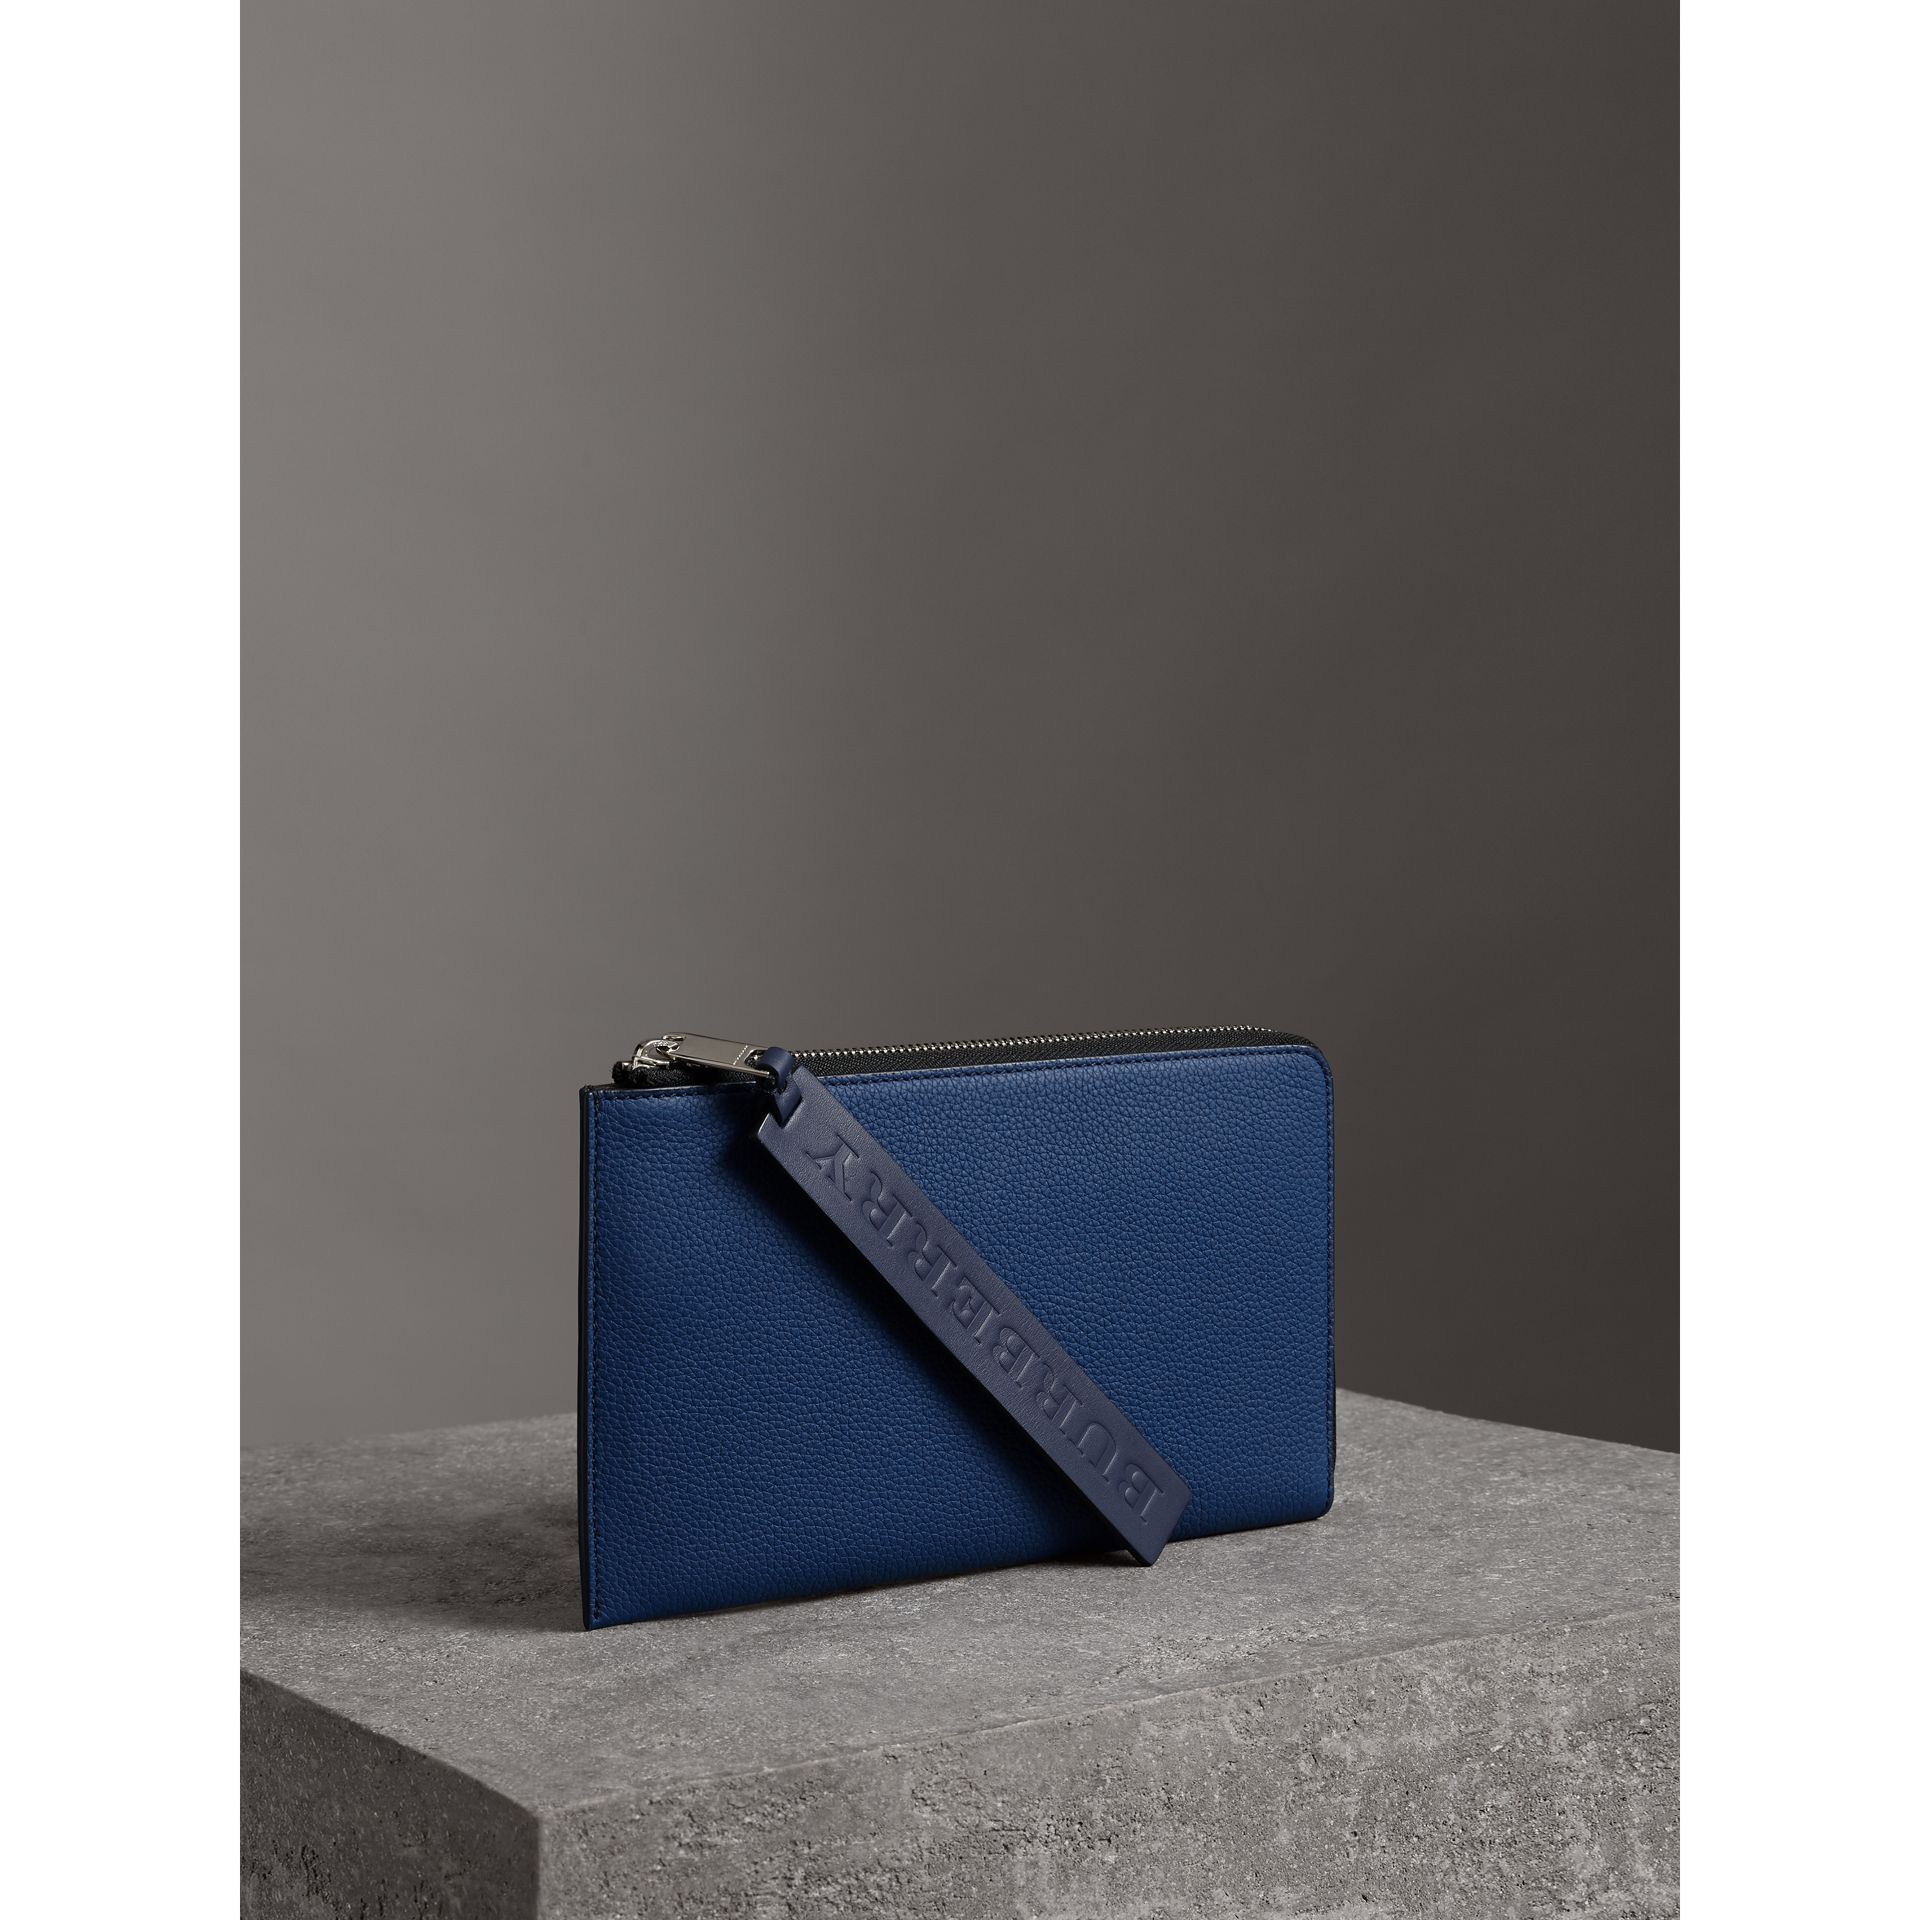 Two-tone Grainy Leather Travel Wallet in Bright Ultramarine - Men | Burberry Singapore - gallery image 5